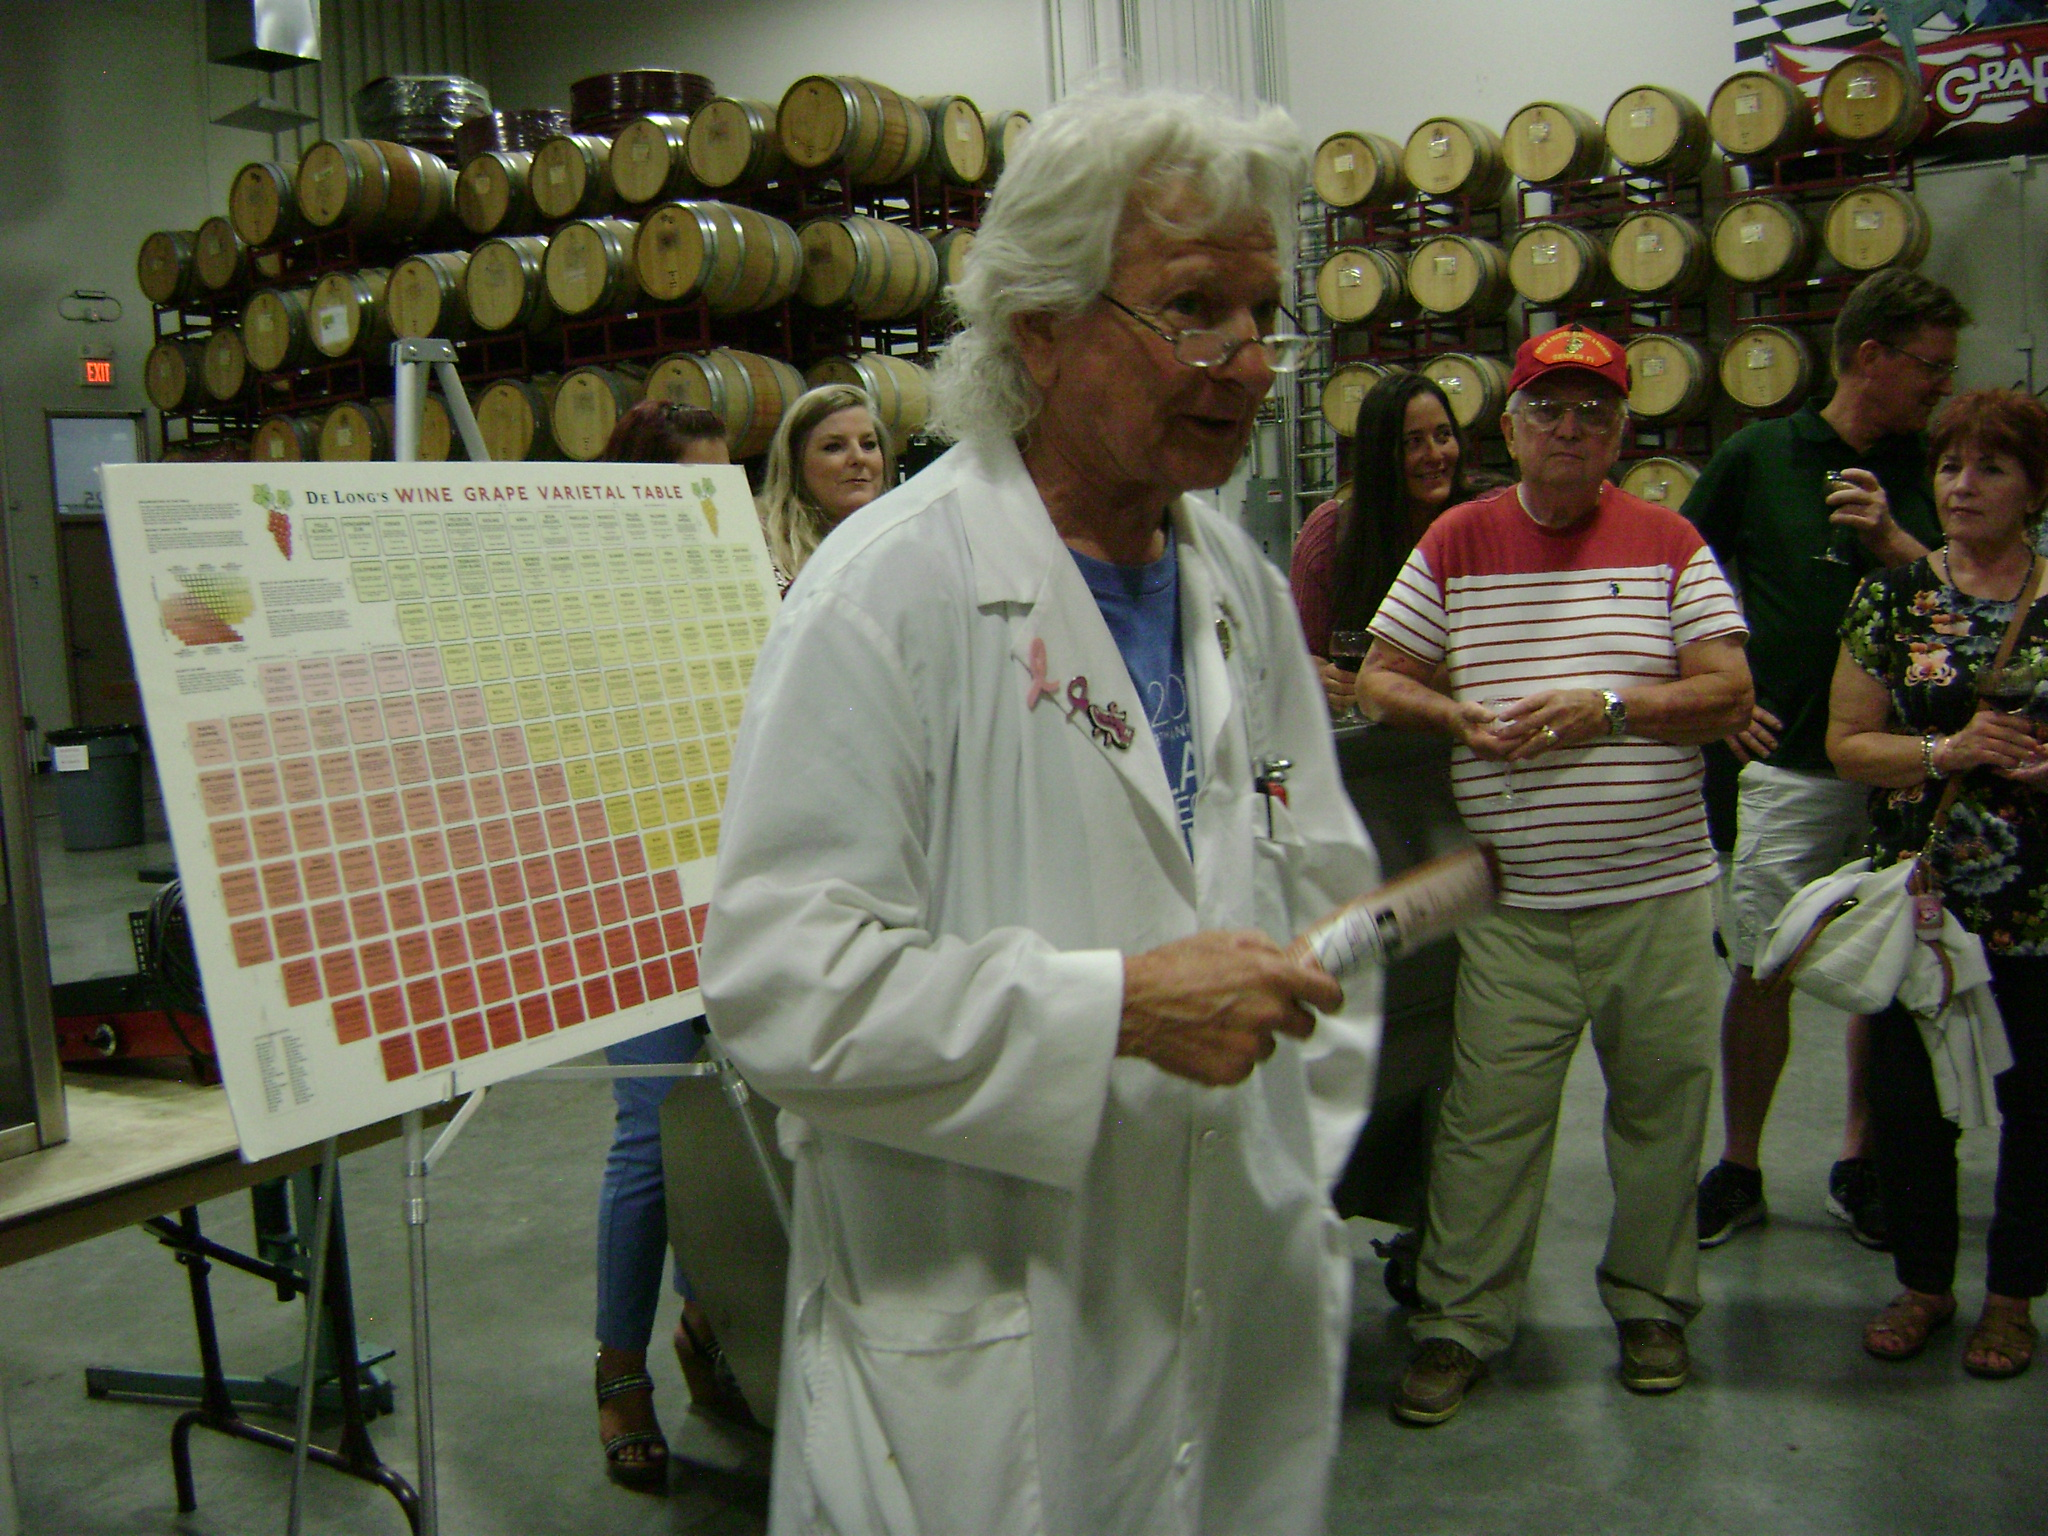 """Professor of Yeastology"" K.J. Howe offers a preview of winemaking classes at Grape Expectations Las Vegas, August 23, 2017. Photo: @GrapeBasinNews"